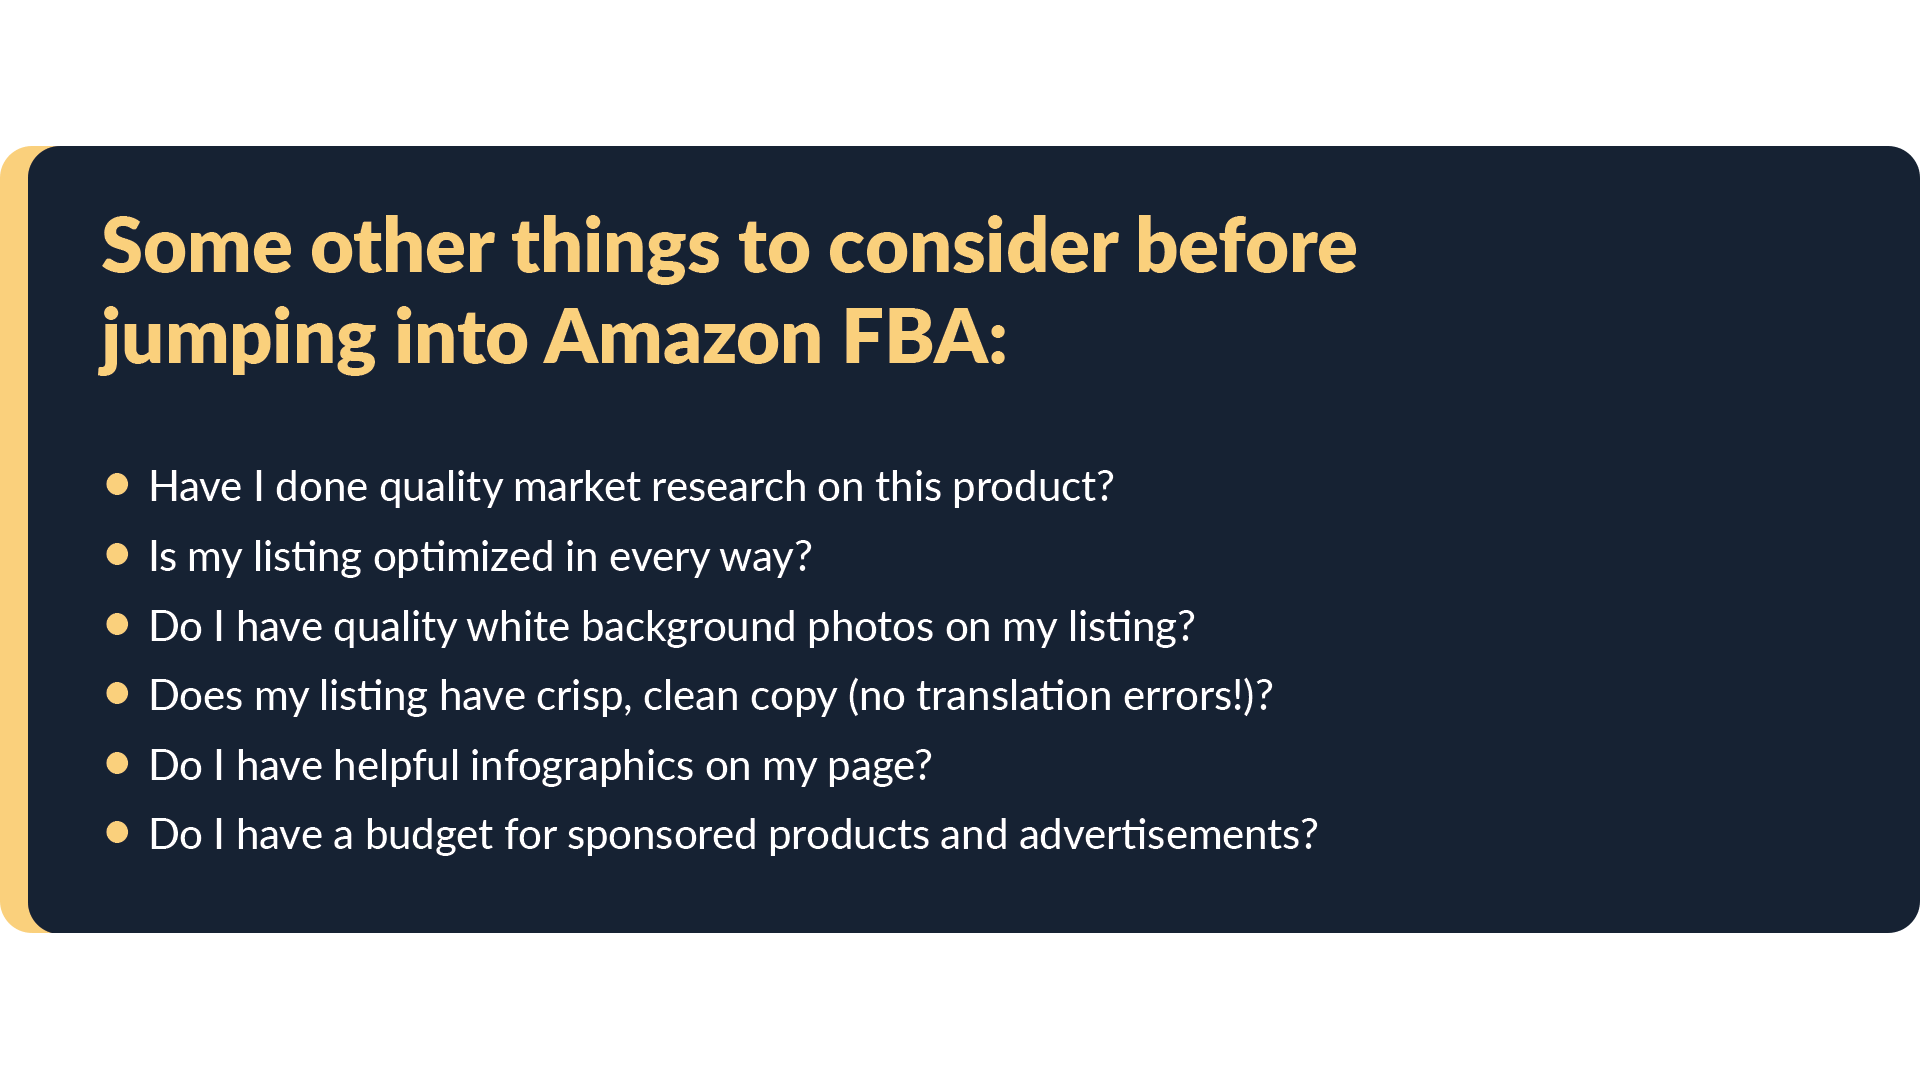 More things to consider before committing to Amazon FBA. Have I done quality market research on this product? Is my listing optimized in every way Do I have quality white background photos on my listing? Does my listing have crisp, clean copy (no translation errors)?  Do I have helpful infographics on my page? Do I have a budget for sponsored products and advertisements?